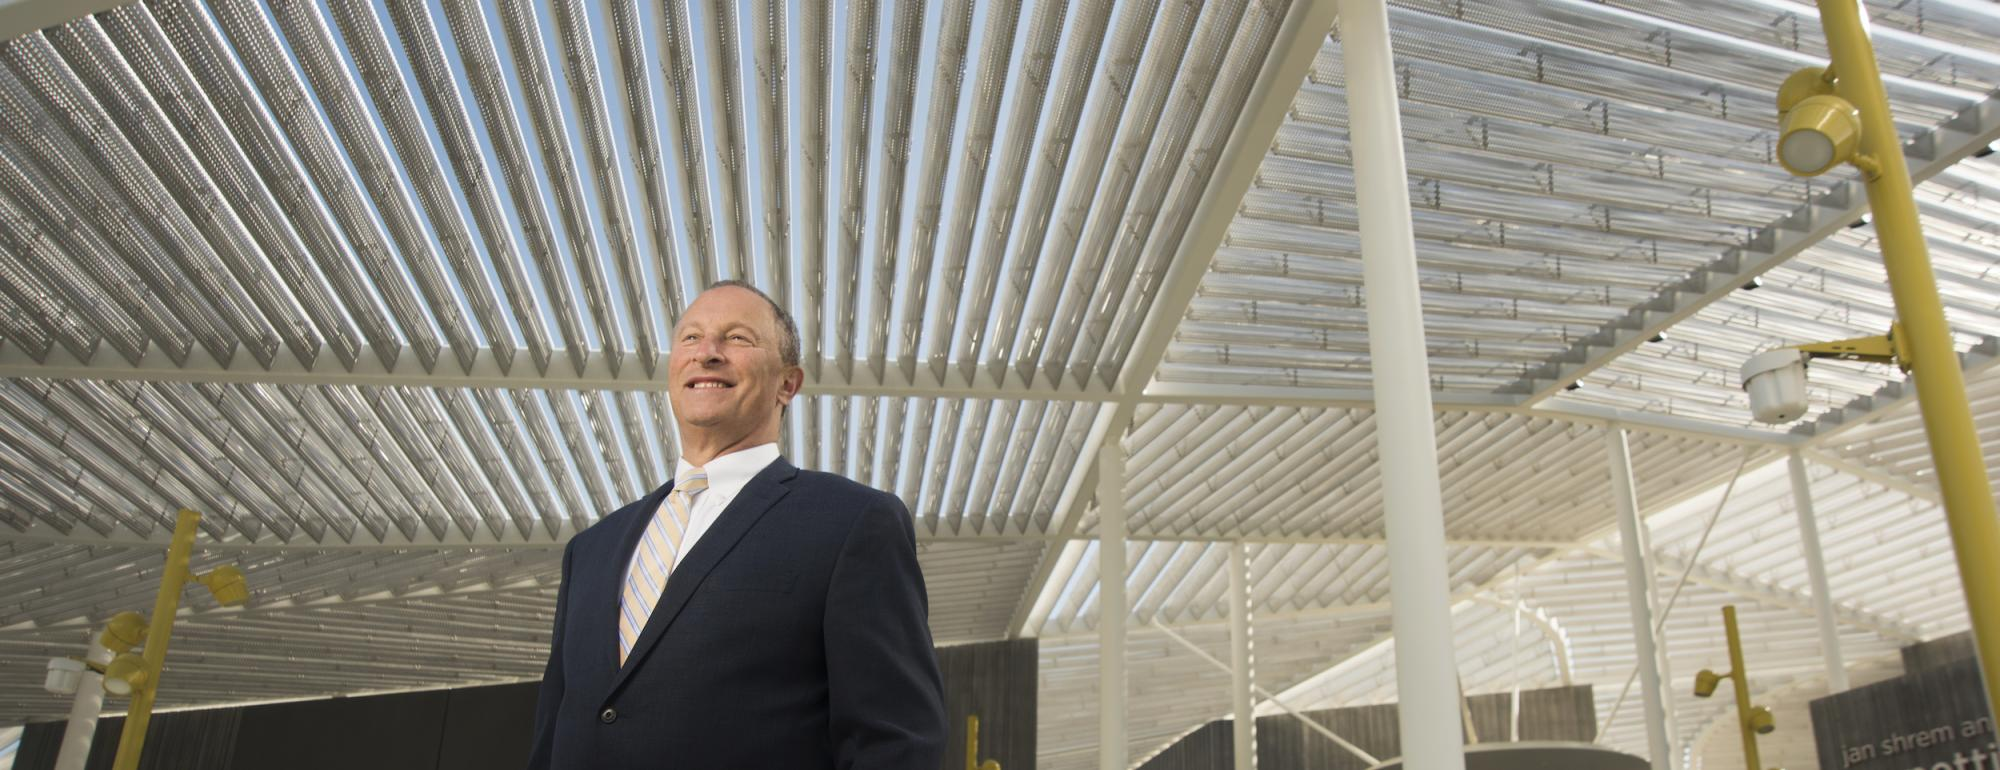 Provost Ralph J Hexter in front of Manetti Shrem Museum UC Davis